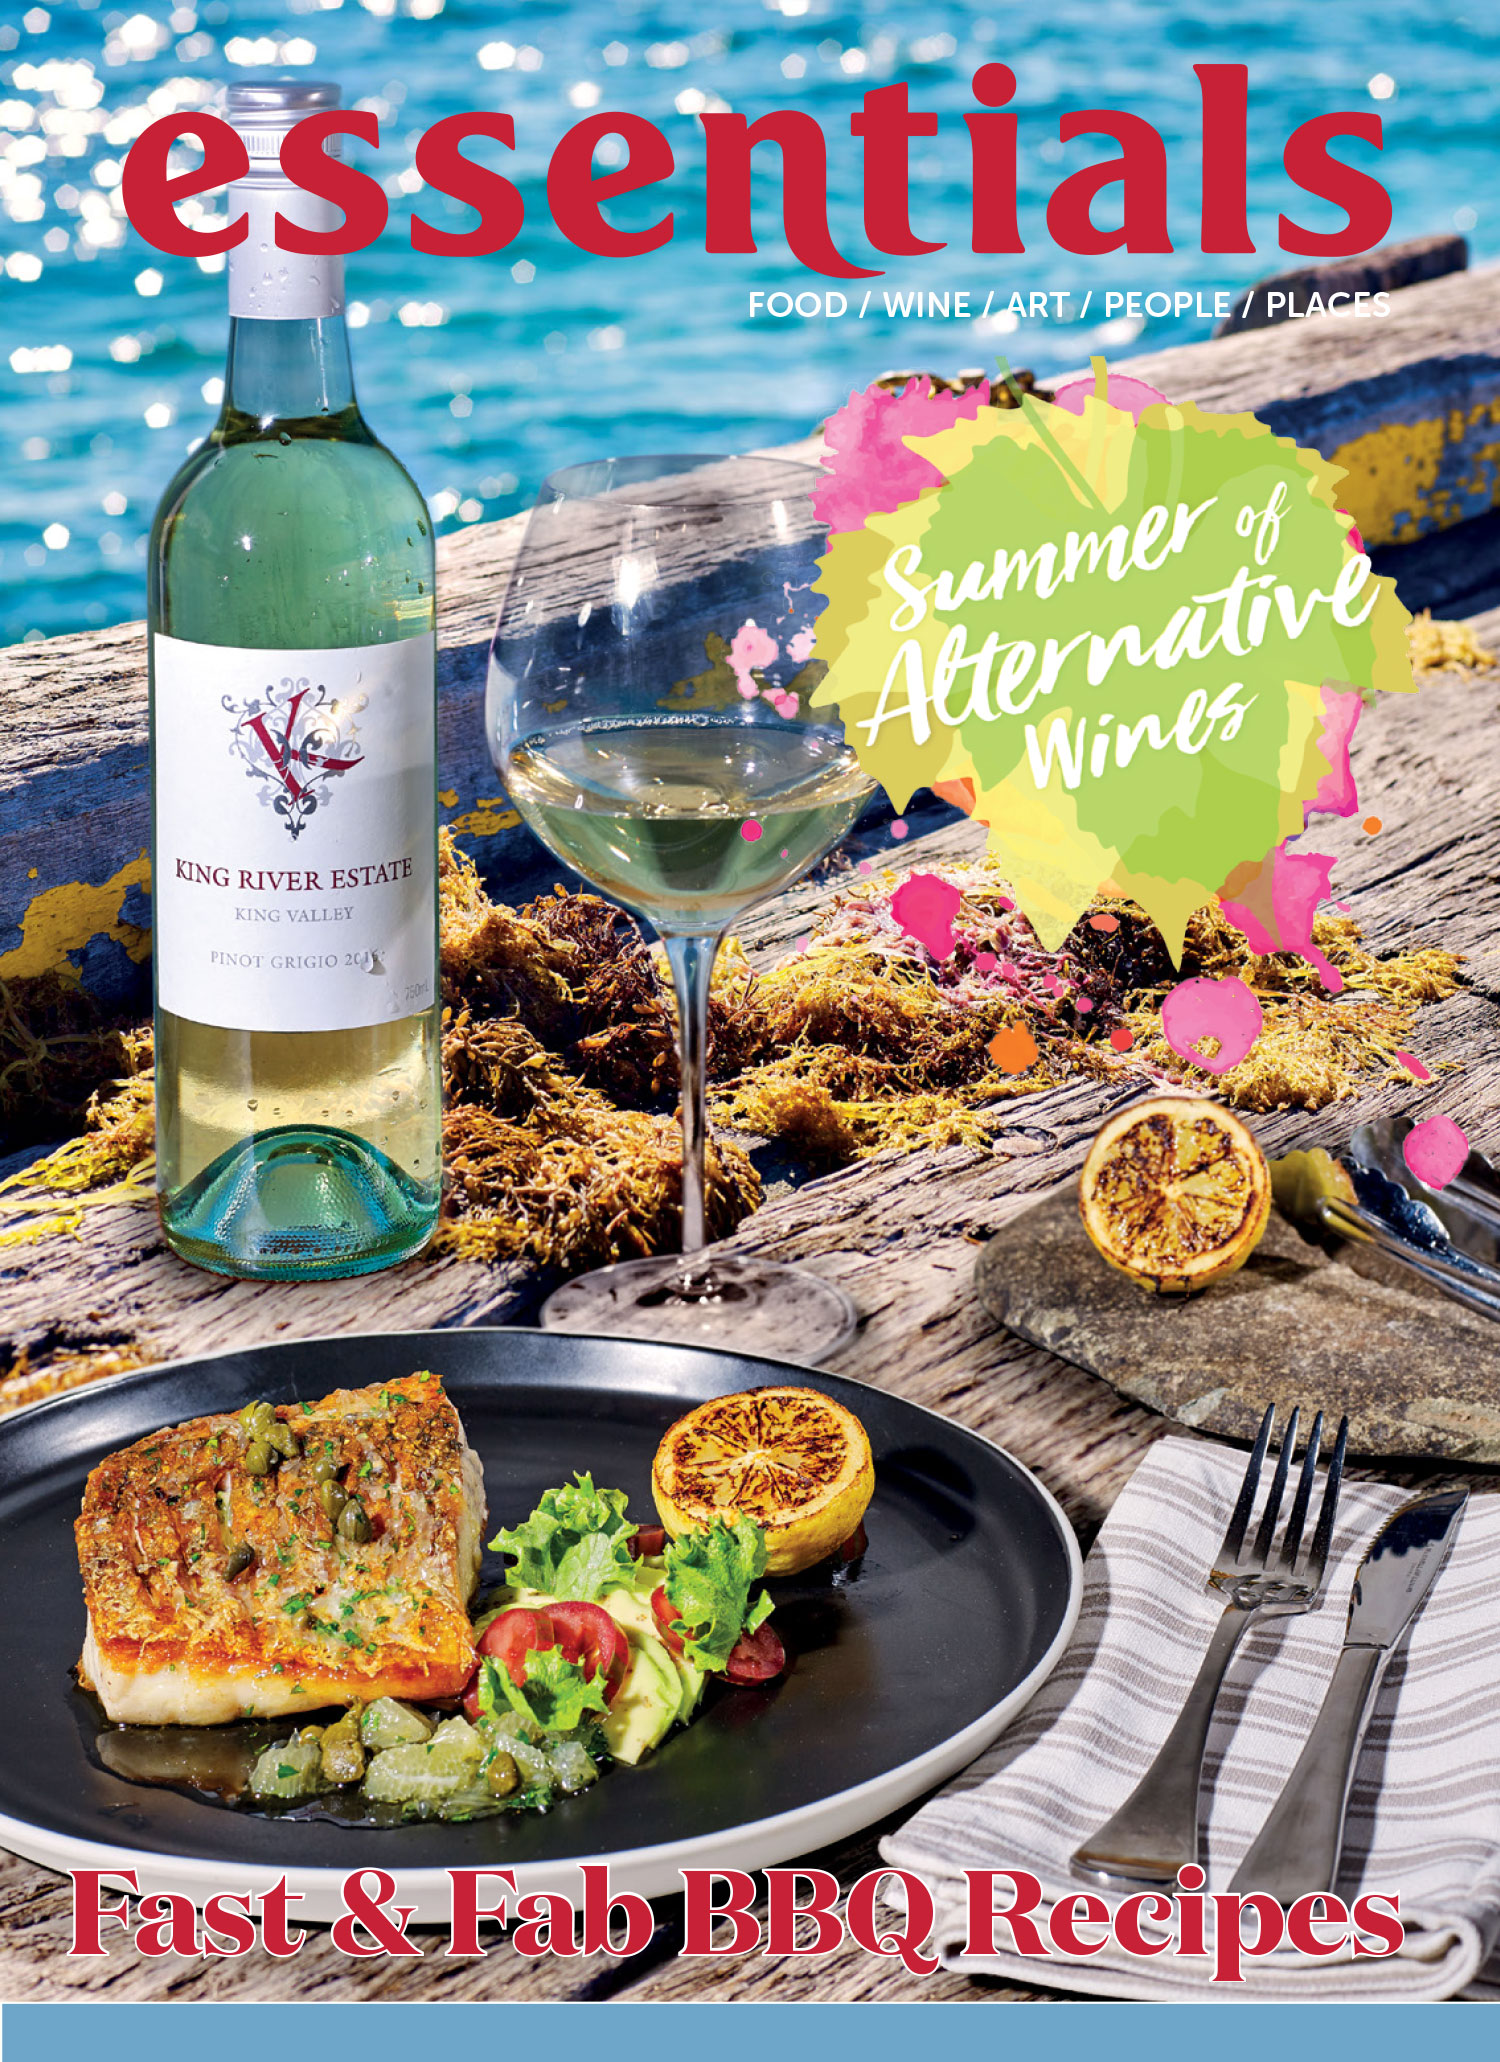 Summer-of-Alternaive-Wines-recipes-booklet